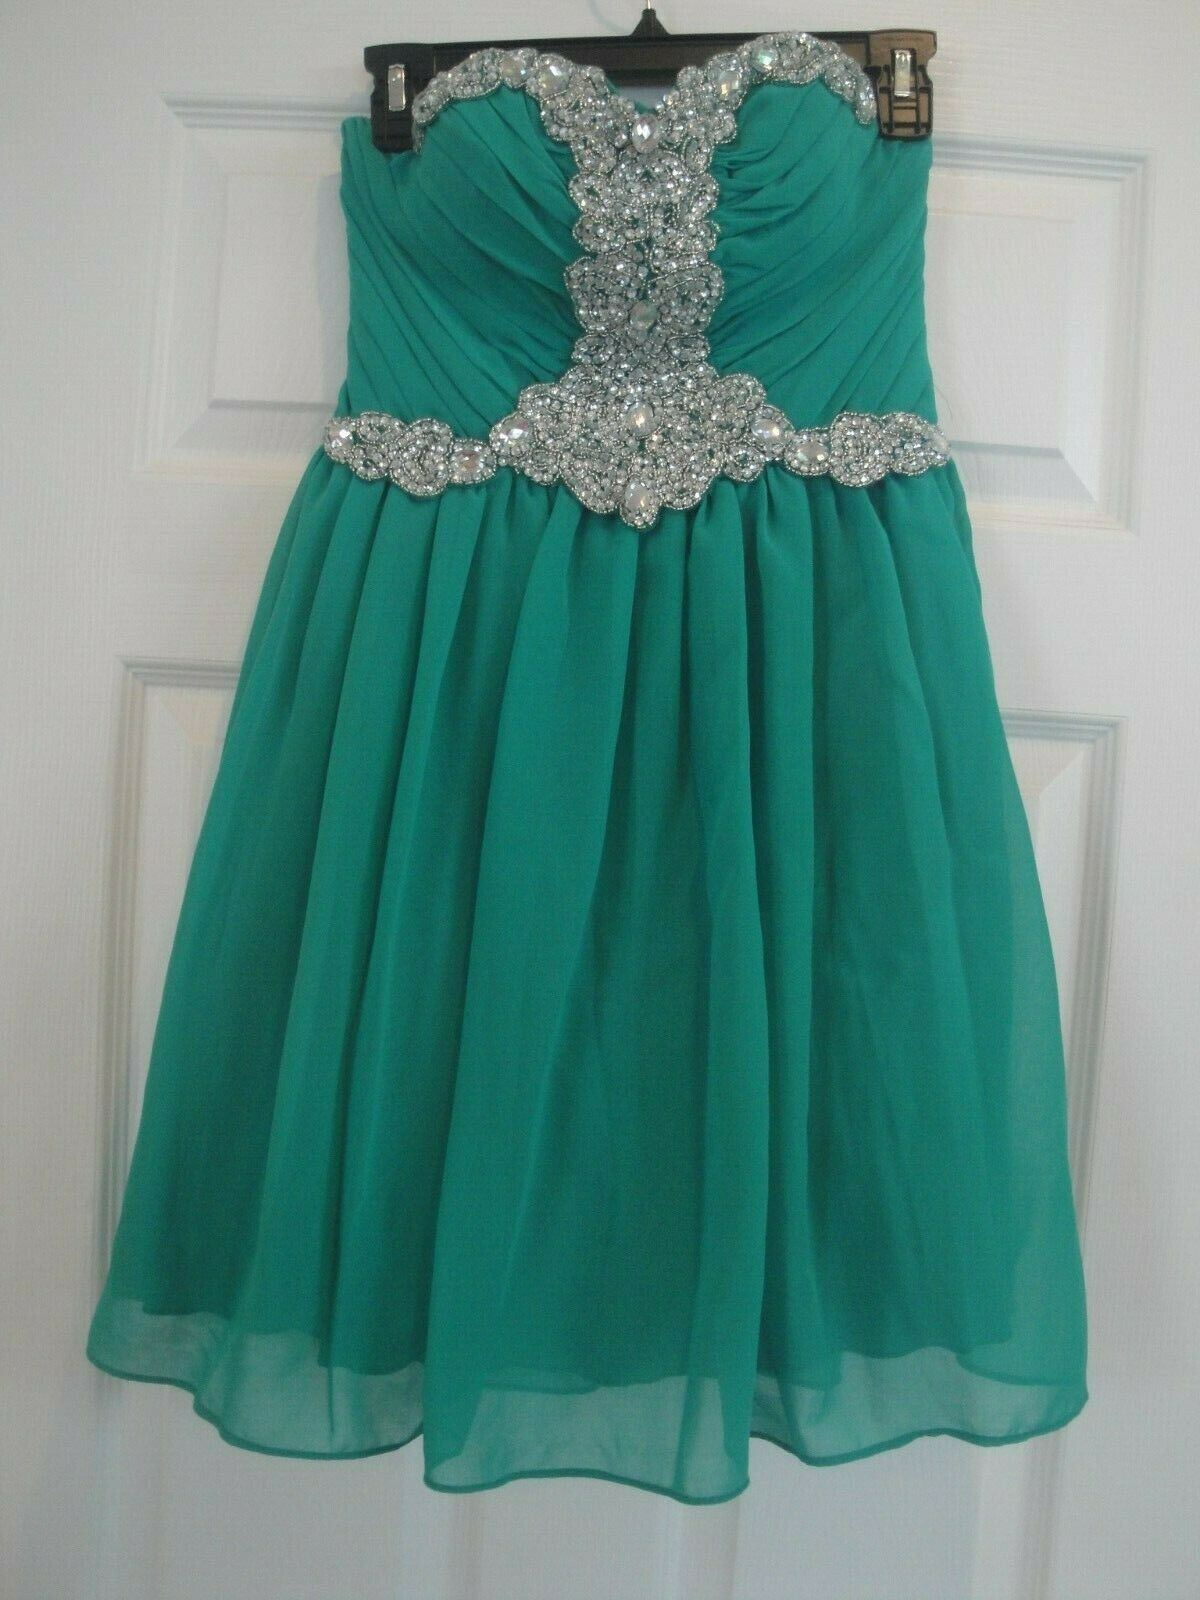 City Triangles Juniors Strapless Special Occasion Green Dress Size: 3